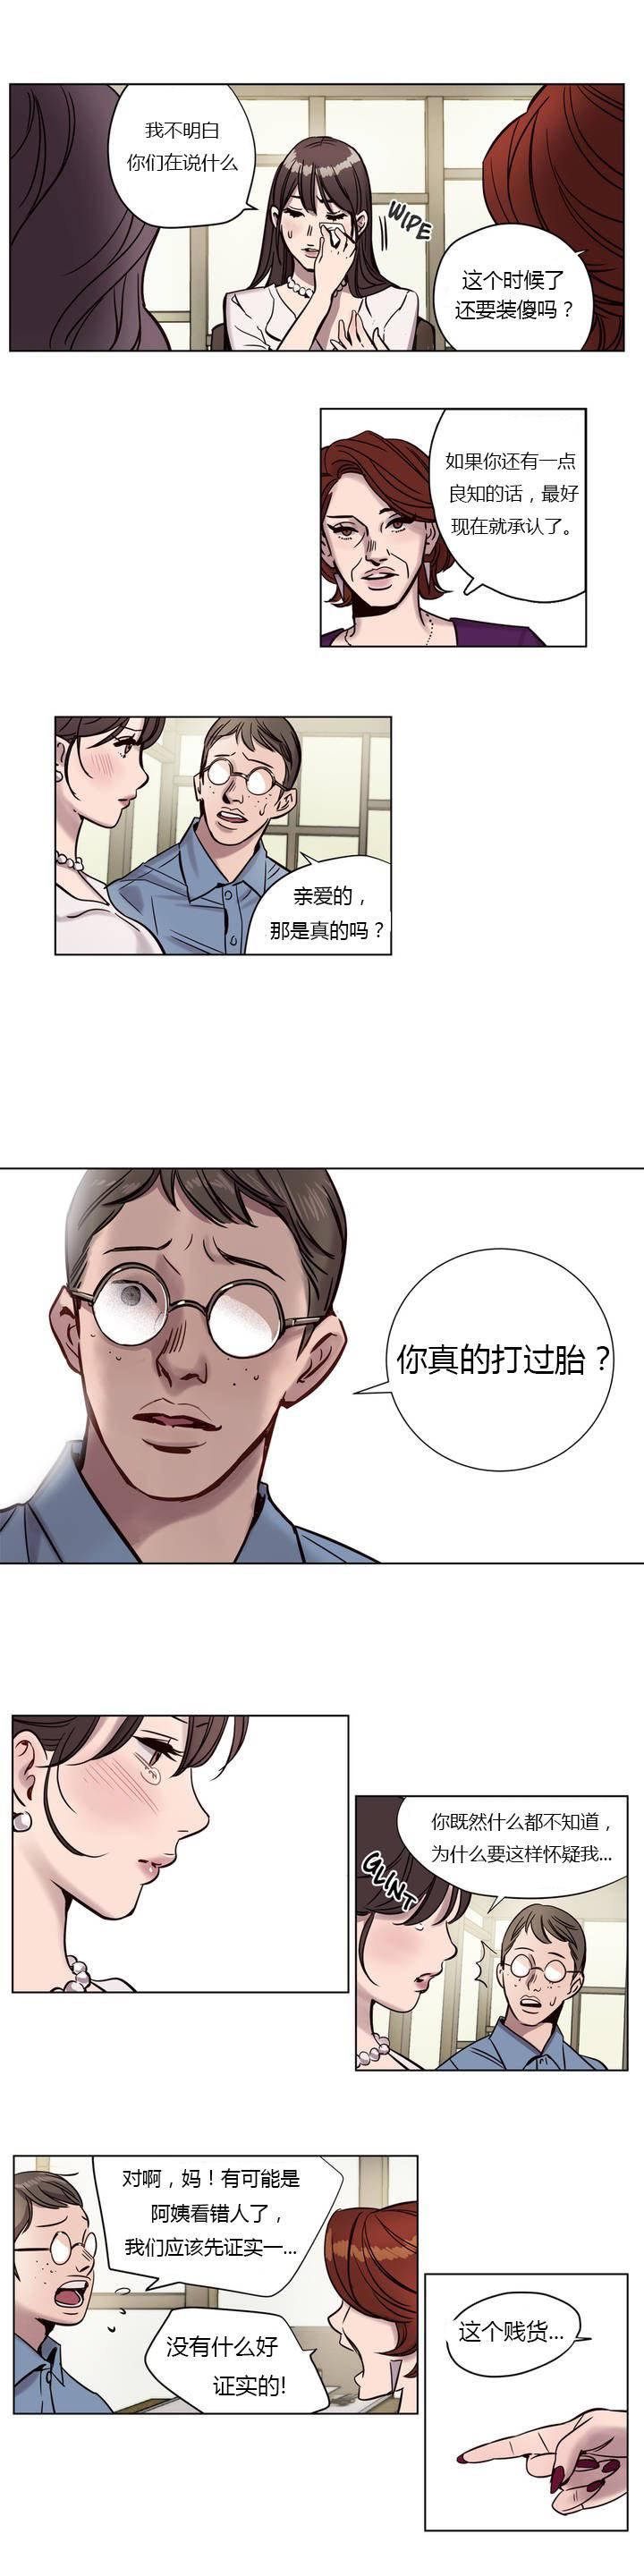 Atonement Camp Ch.0-34 67